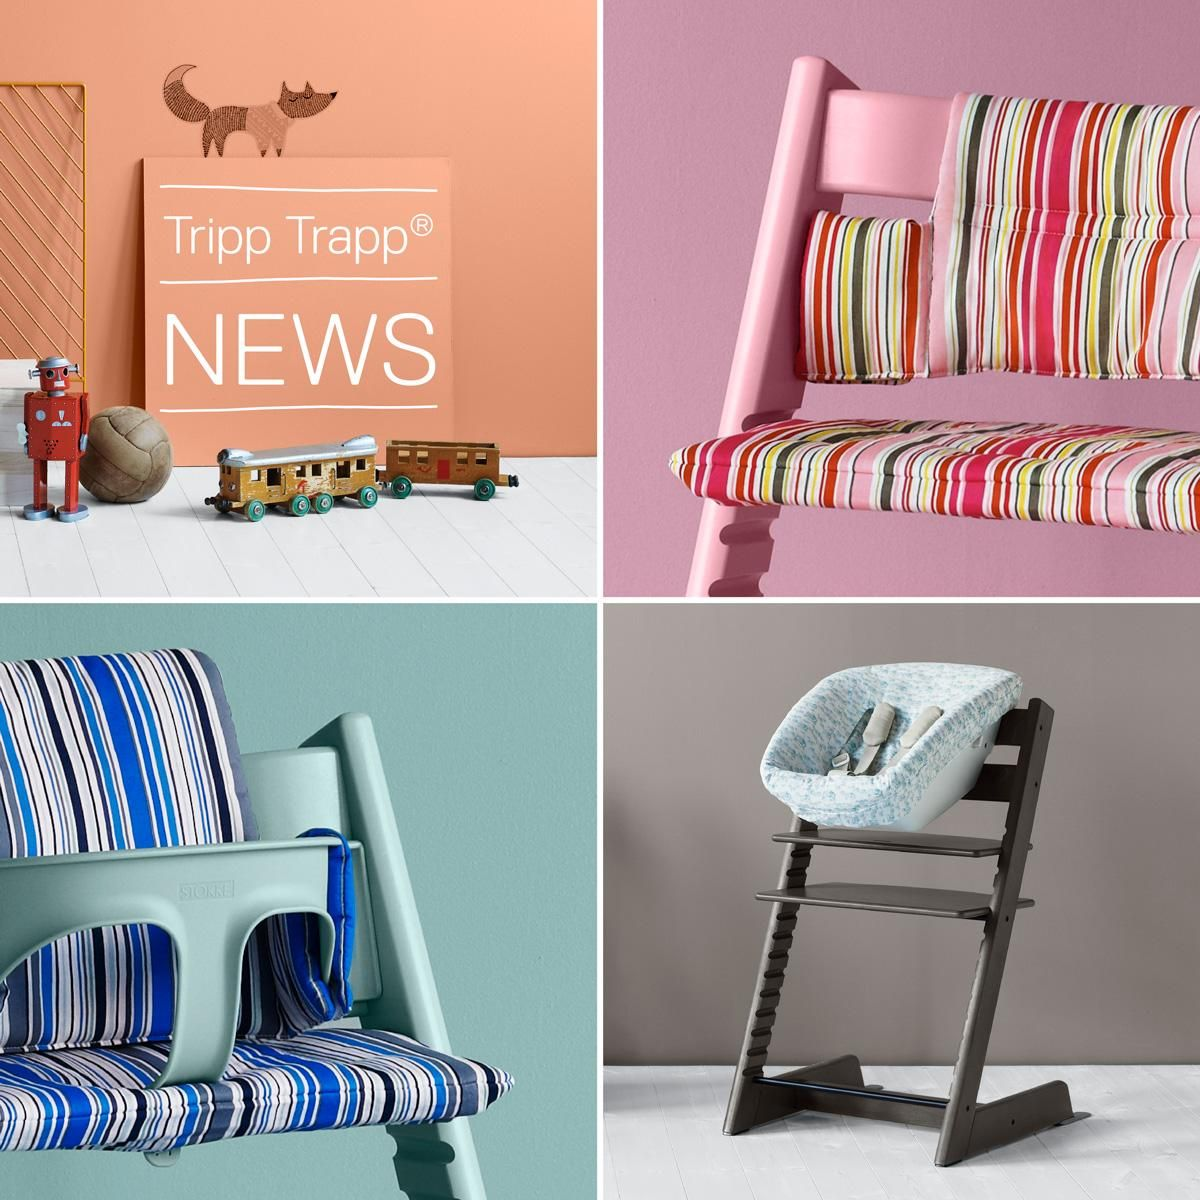 stokke high chair cushion sewing pattern backless height stool tripp trapp chairs  now available in more colors